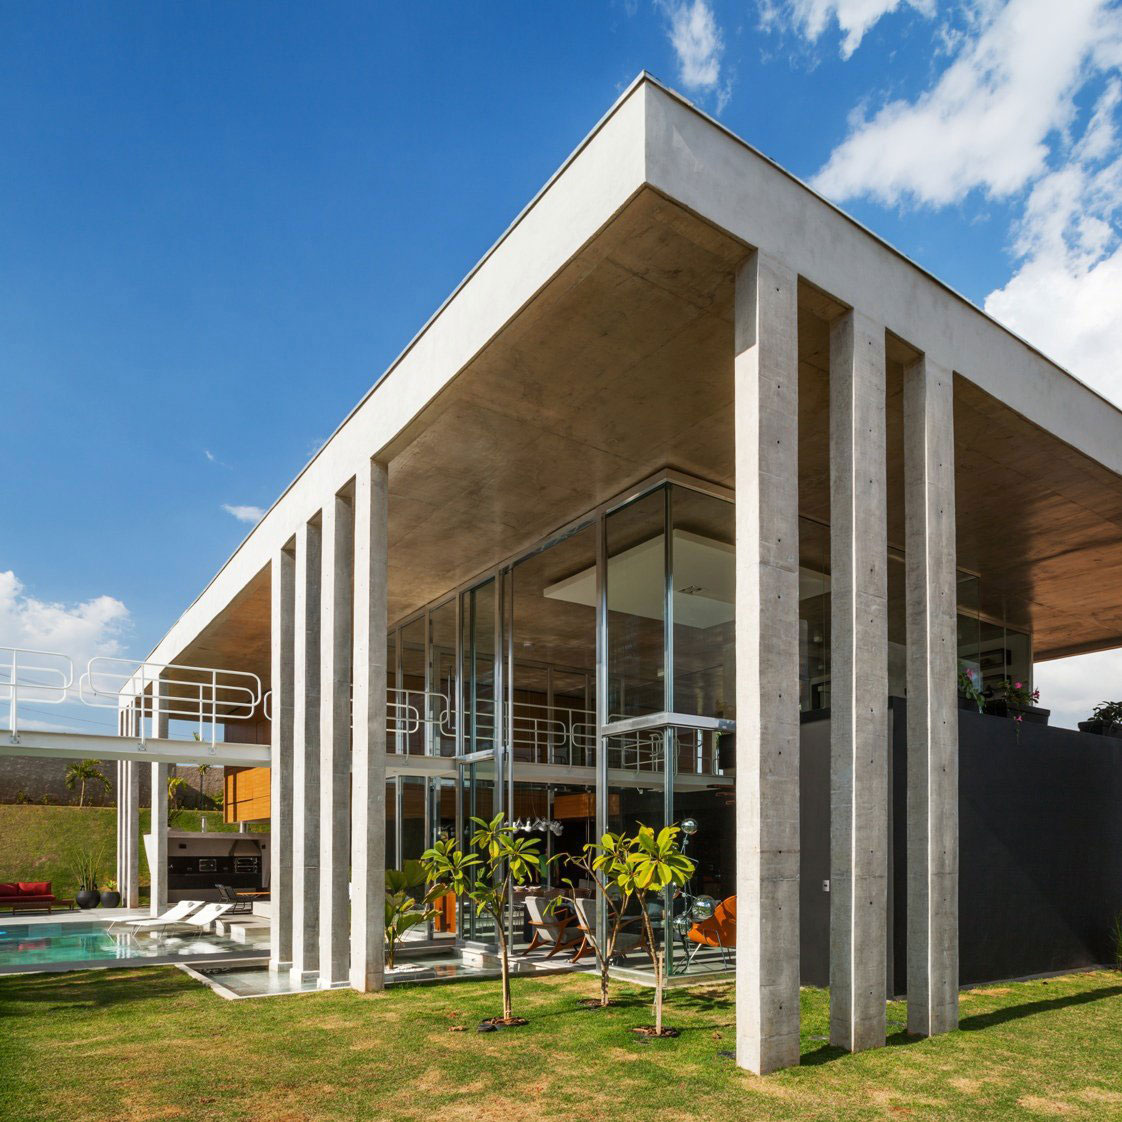 The Botucatu House stands as an architectural masterpiece 2 The Botucatu House stands as an architectural masterpiece